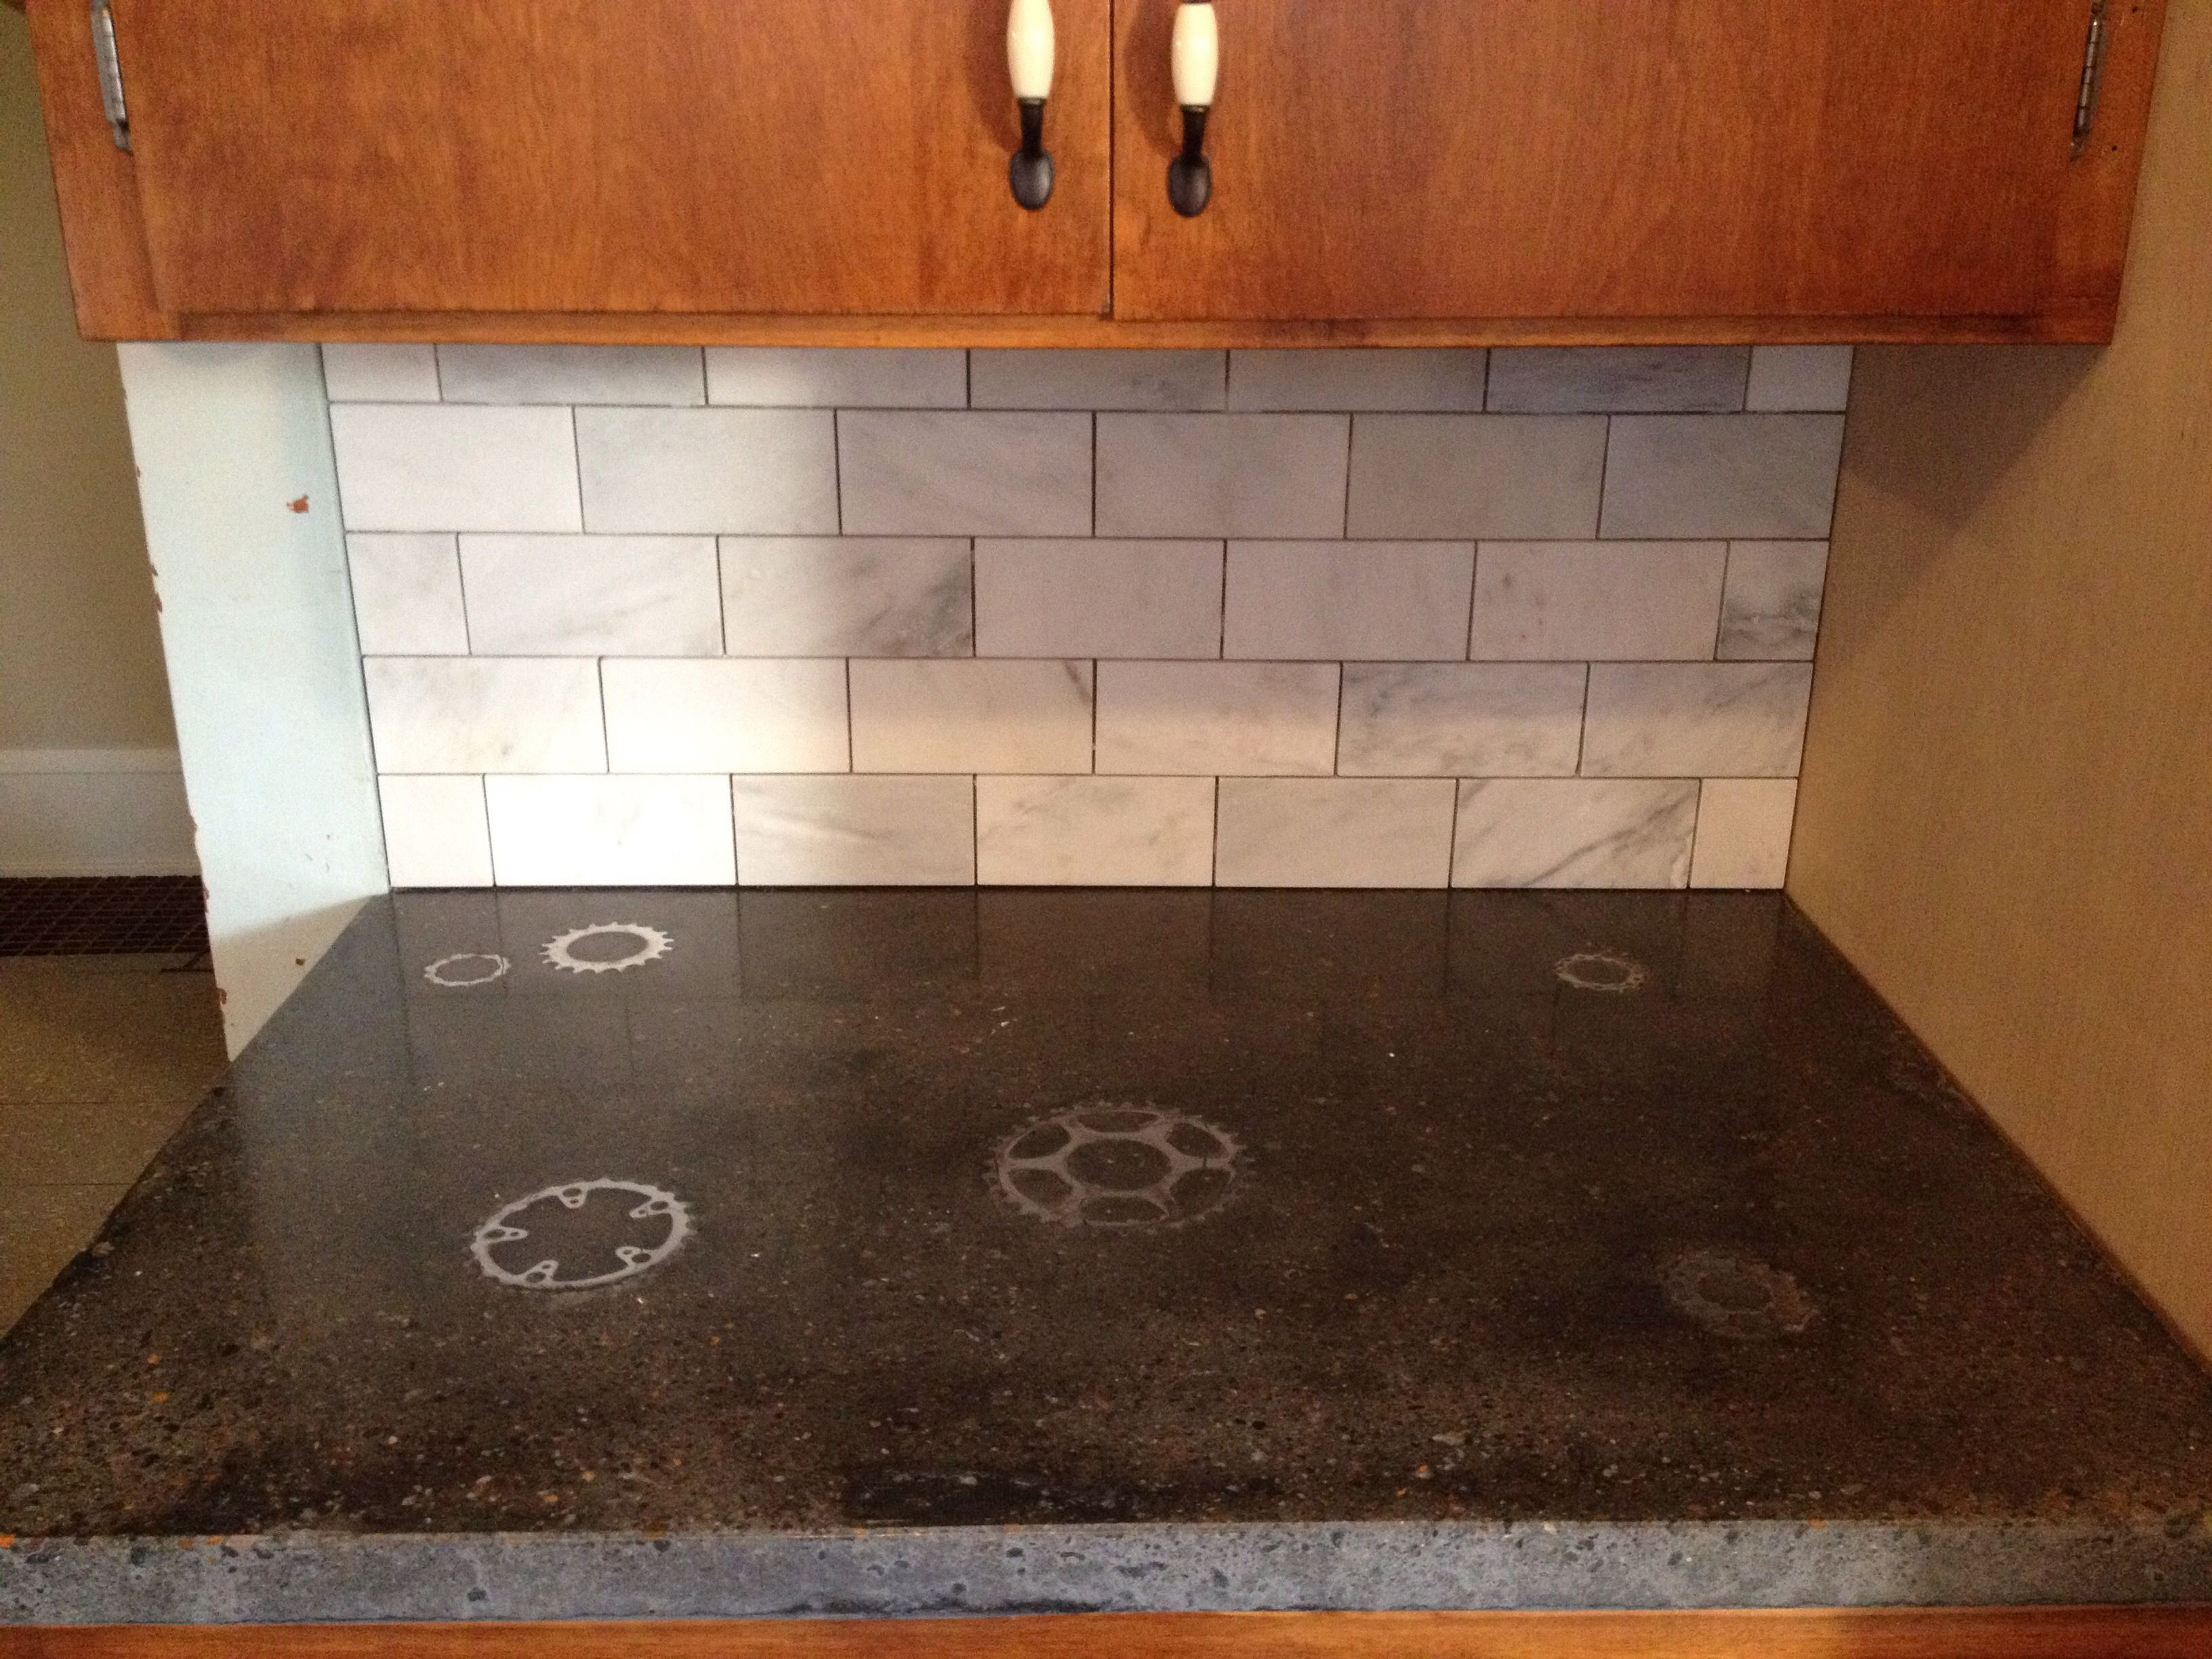 Concrete Countertops With Embedded Bicycle Gears Www Csi Precast